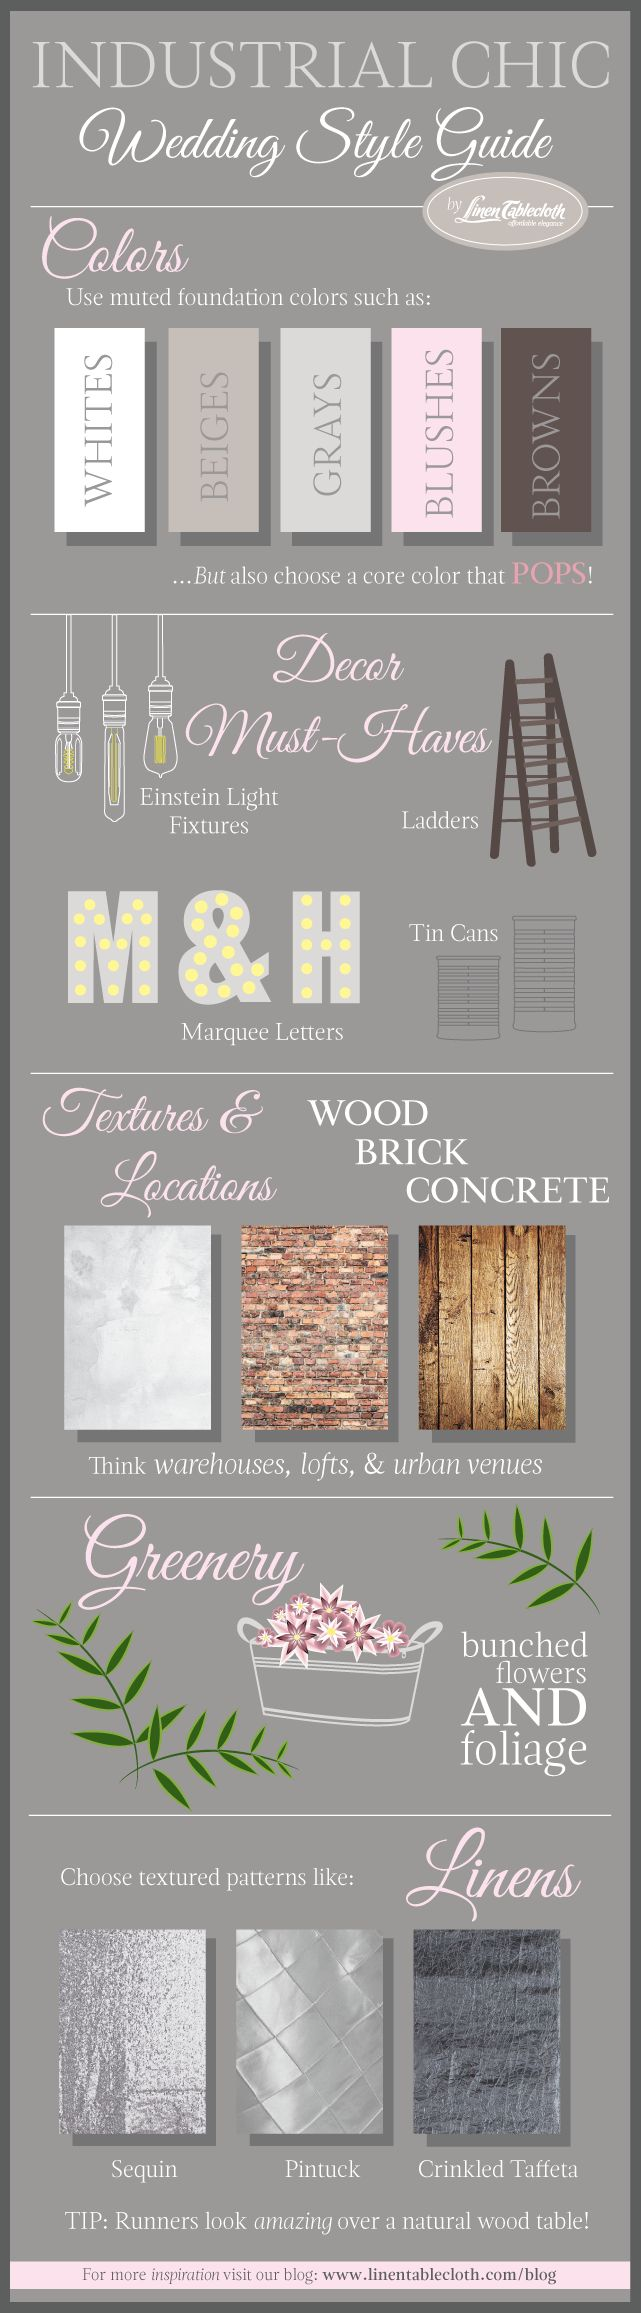 Industrial Chic Wedding Style Guide #infographic #wedding | LinenTablecloth Blog